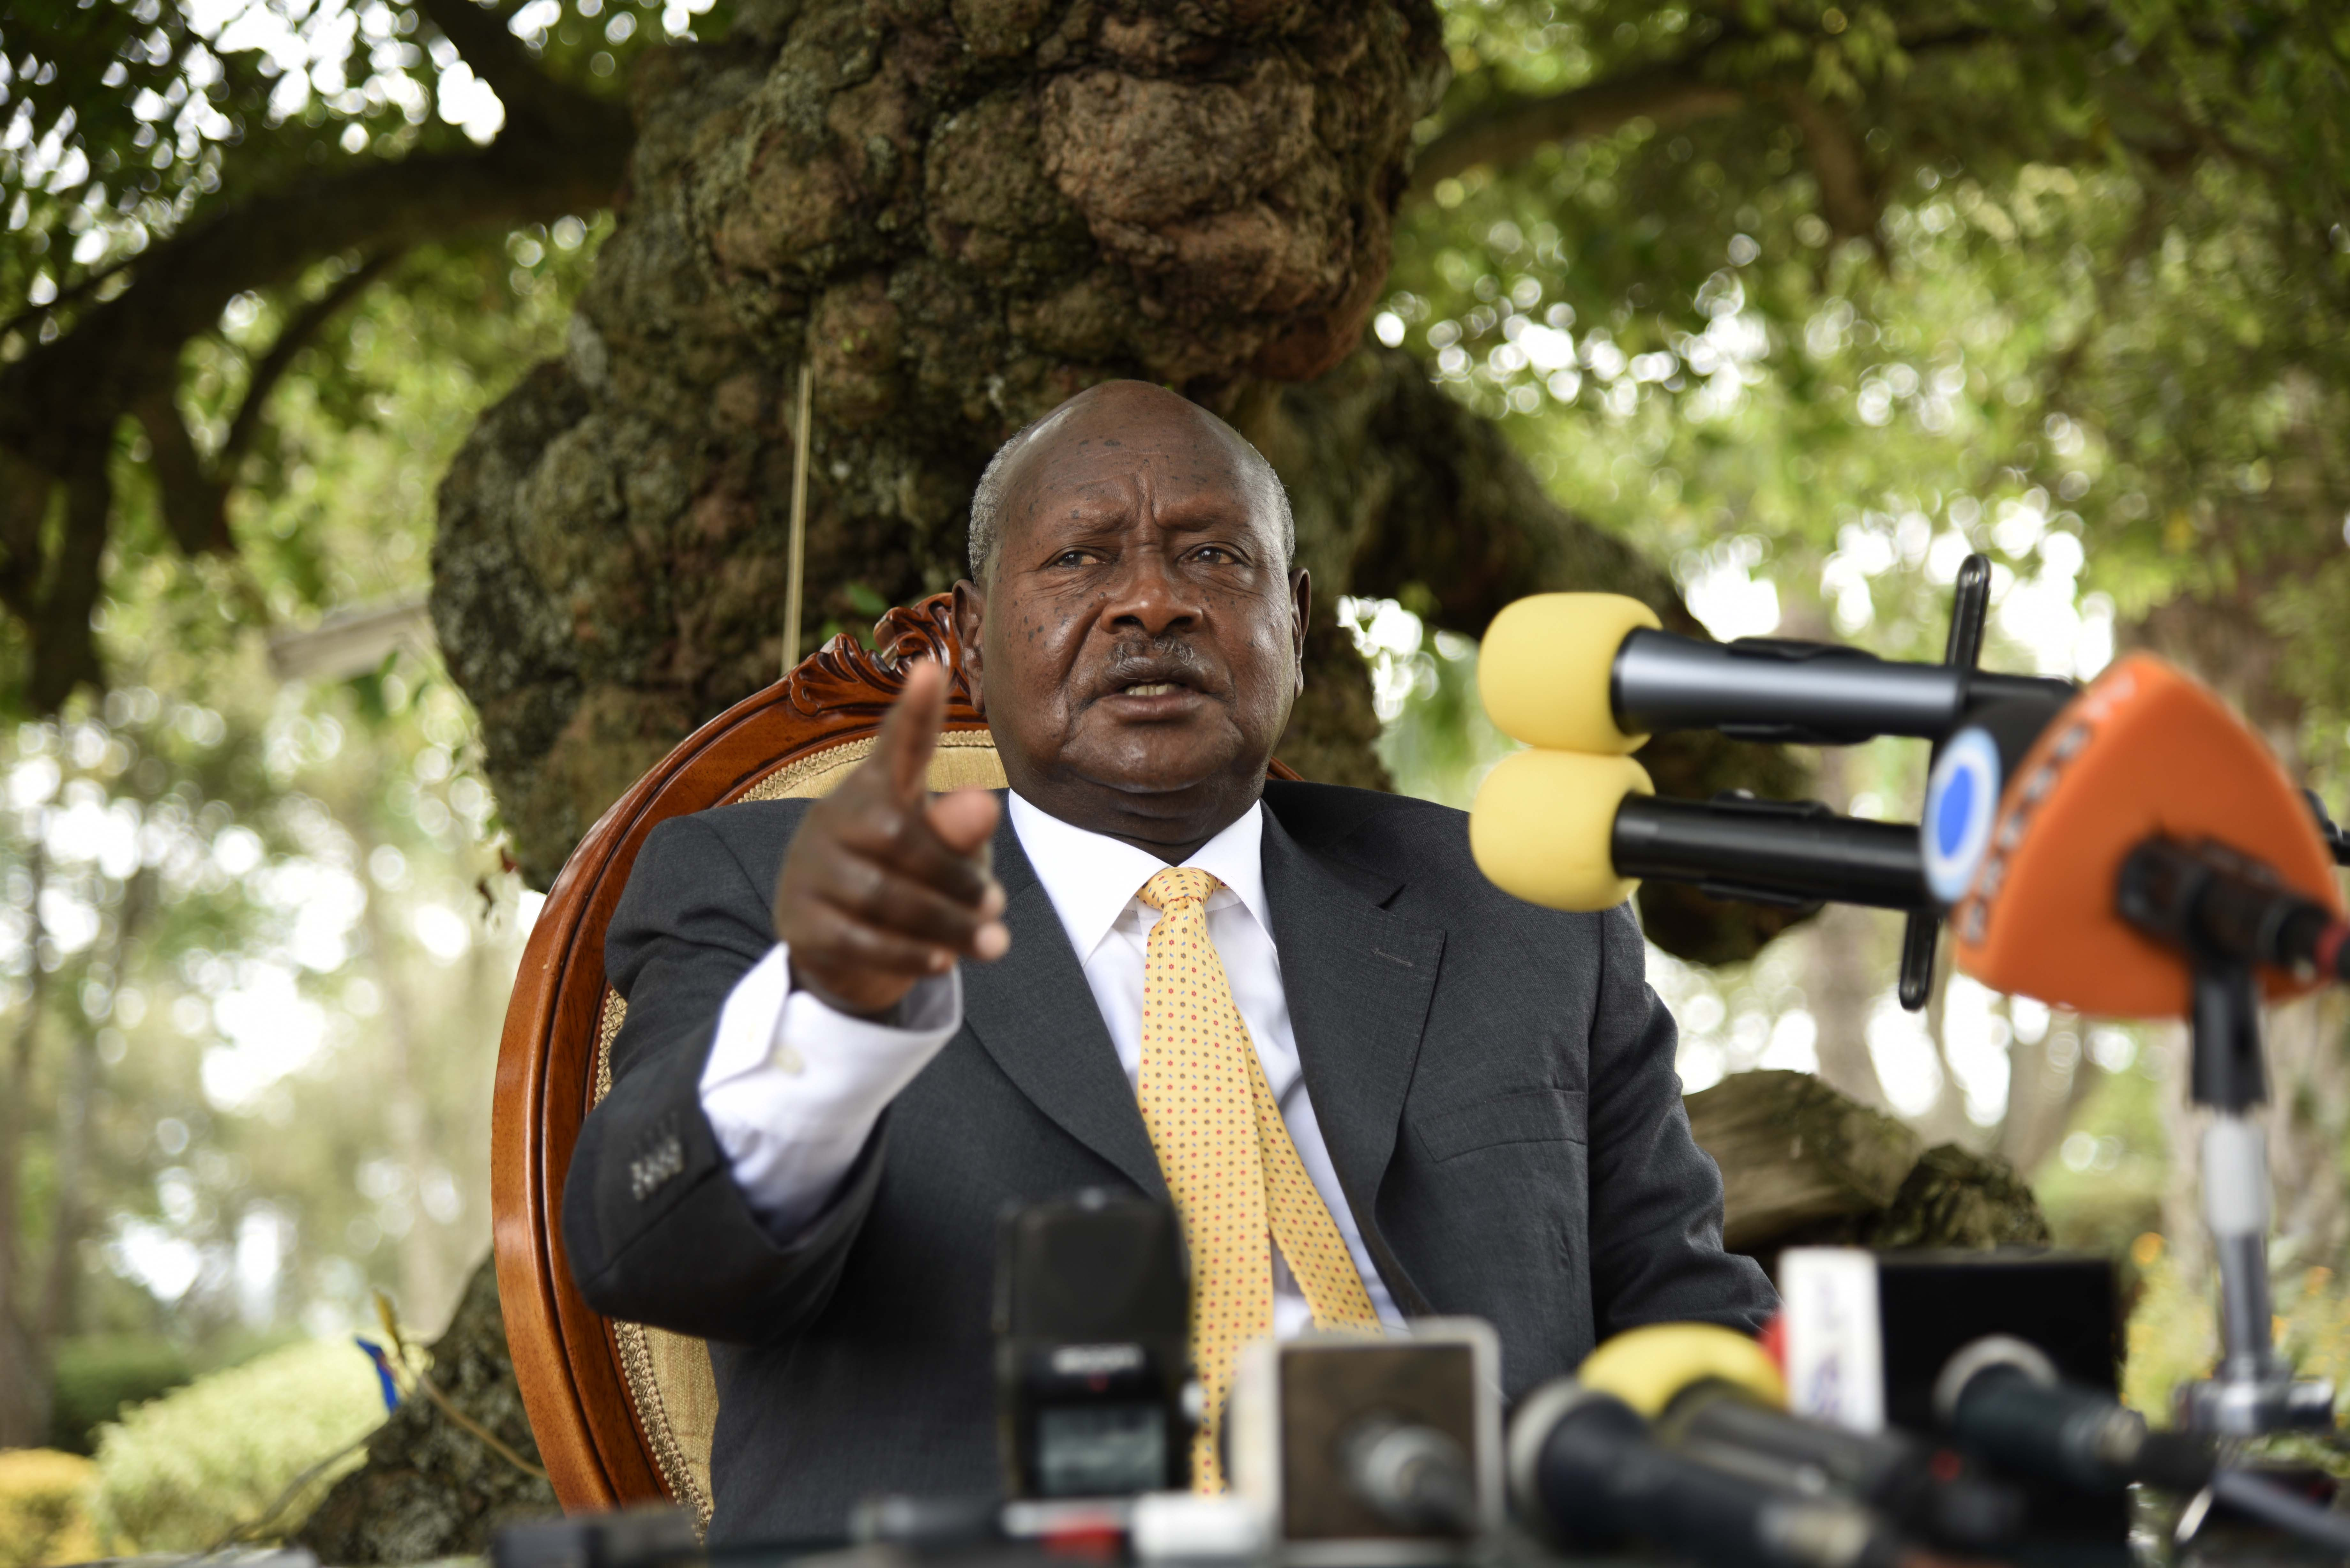 Newly re-elected president Yoweri Museveni, in power since three decades, gestures as he speaks during a press conference at his country house in Rwakitura on Feb. 21, 2016.